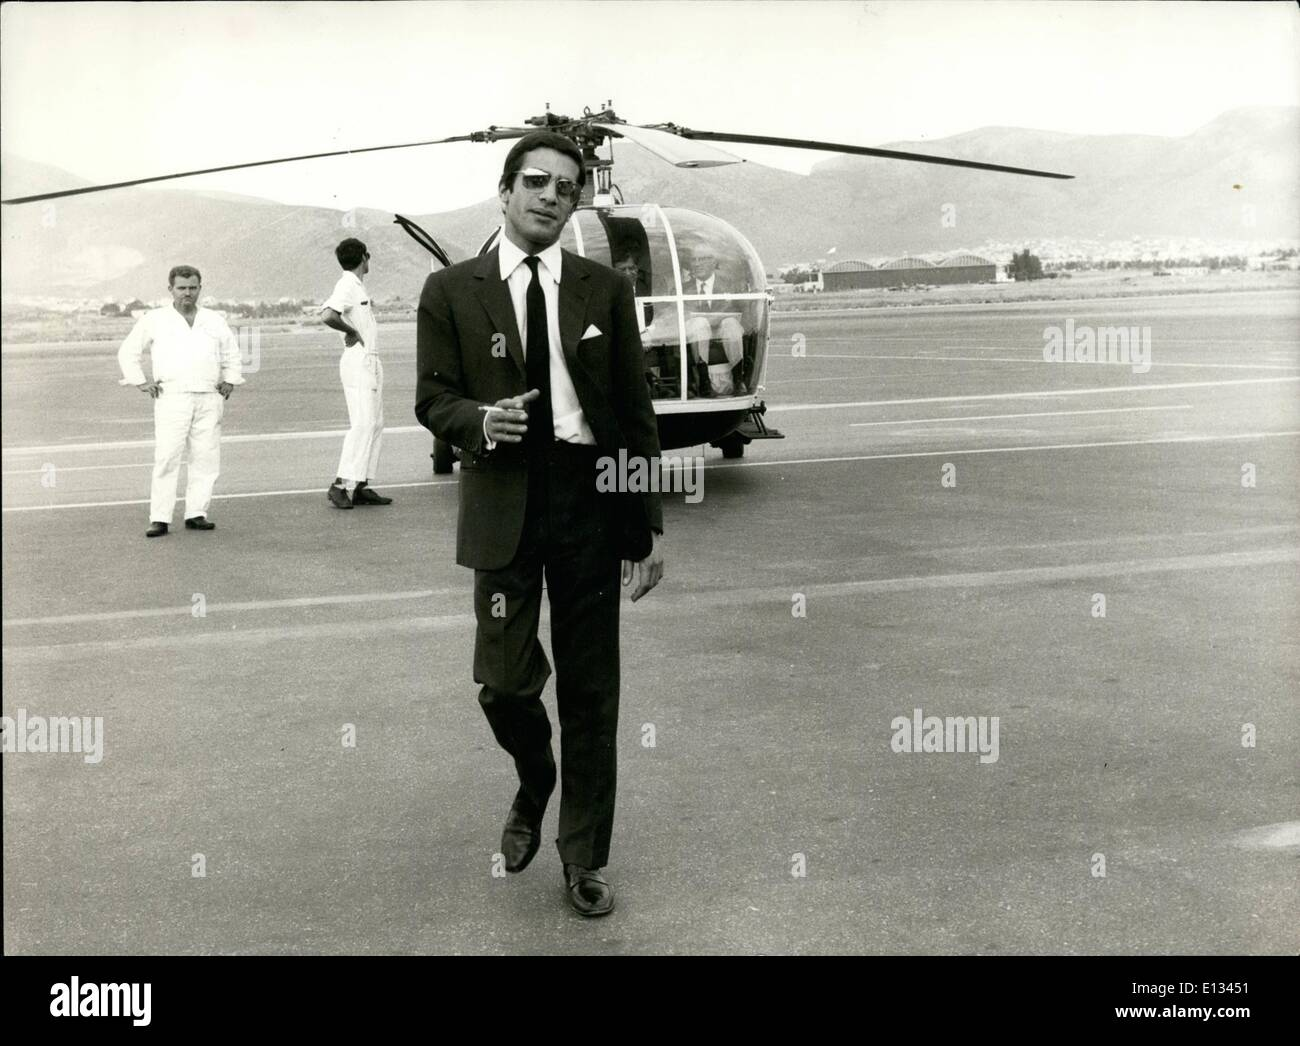 Feb. 26, 2012 - Alexander Onassis posed with his private helicopter at the Athens Airport, the place where he was killed in January 1973 when his plane was crashed soon after it had taken off. - Stock Image